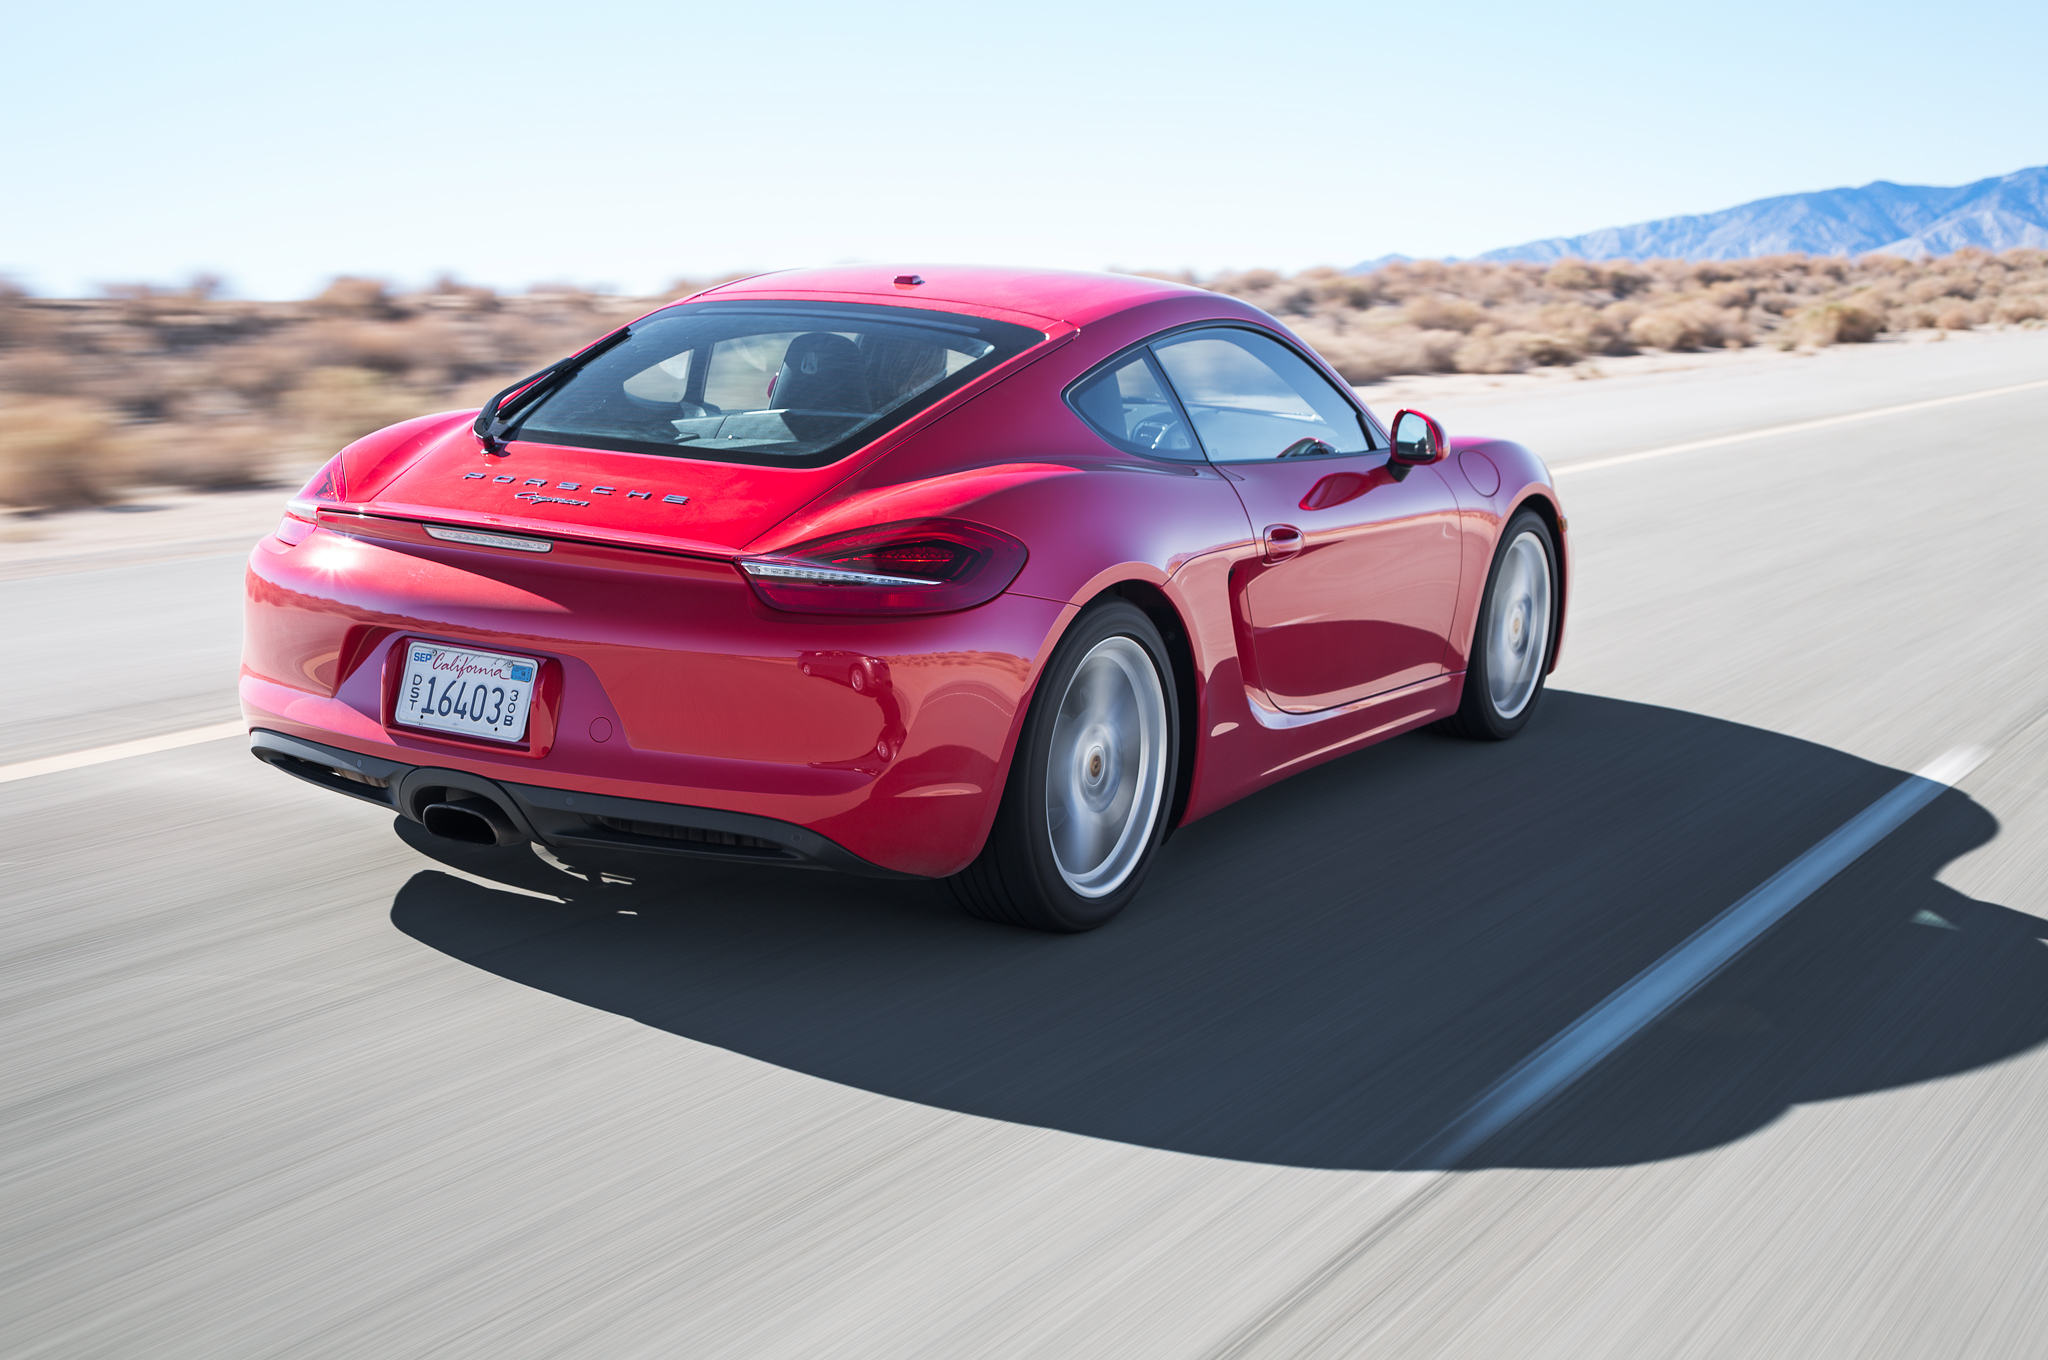 2014 Porsche Cayman Rear Side View